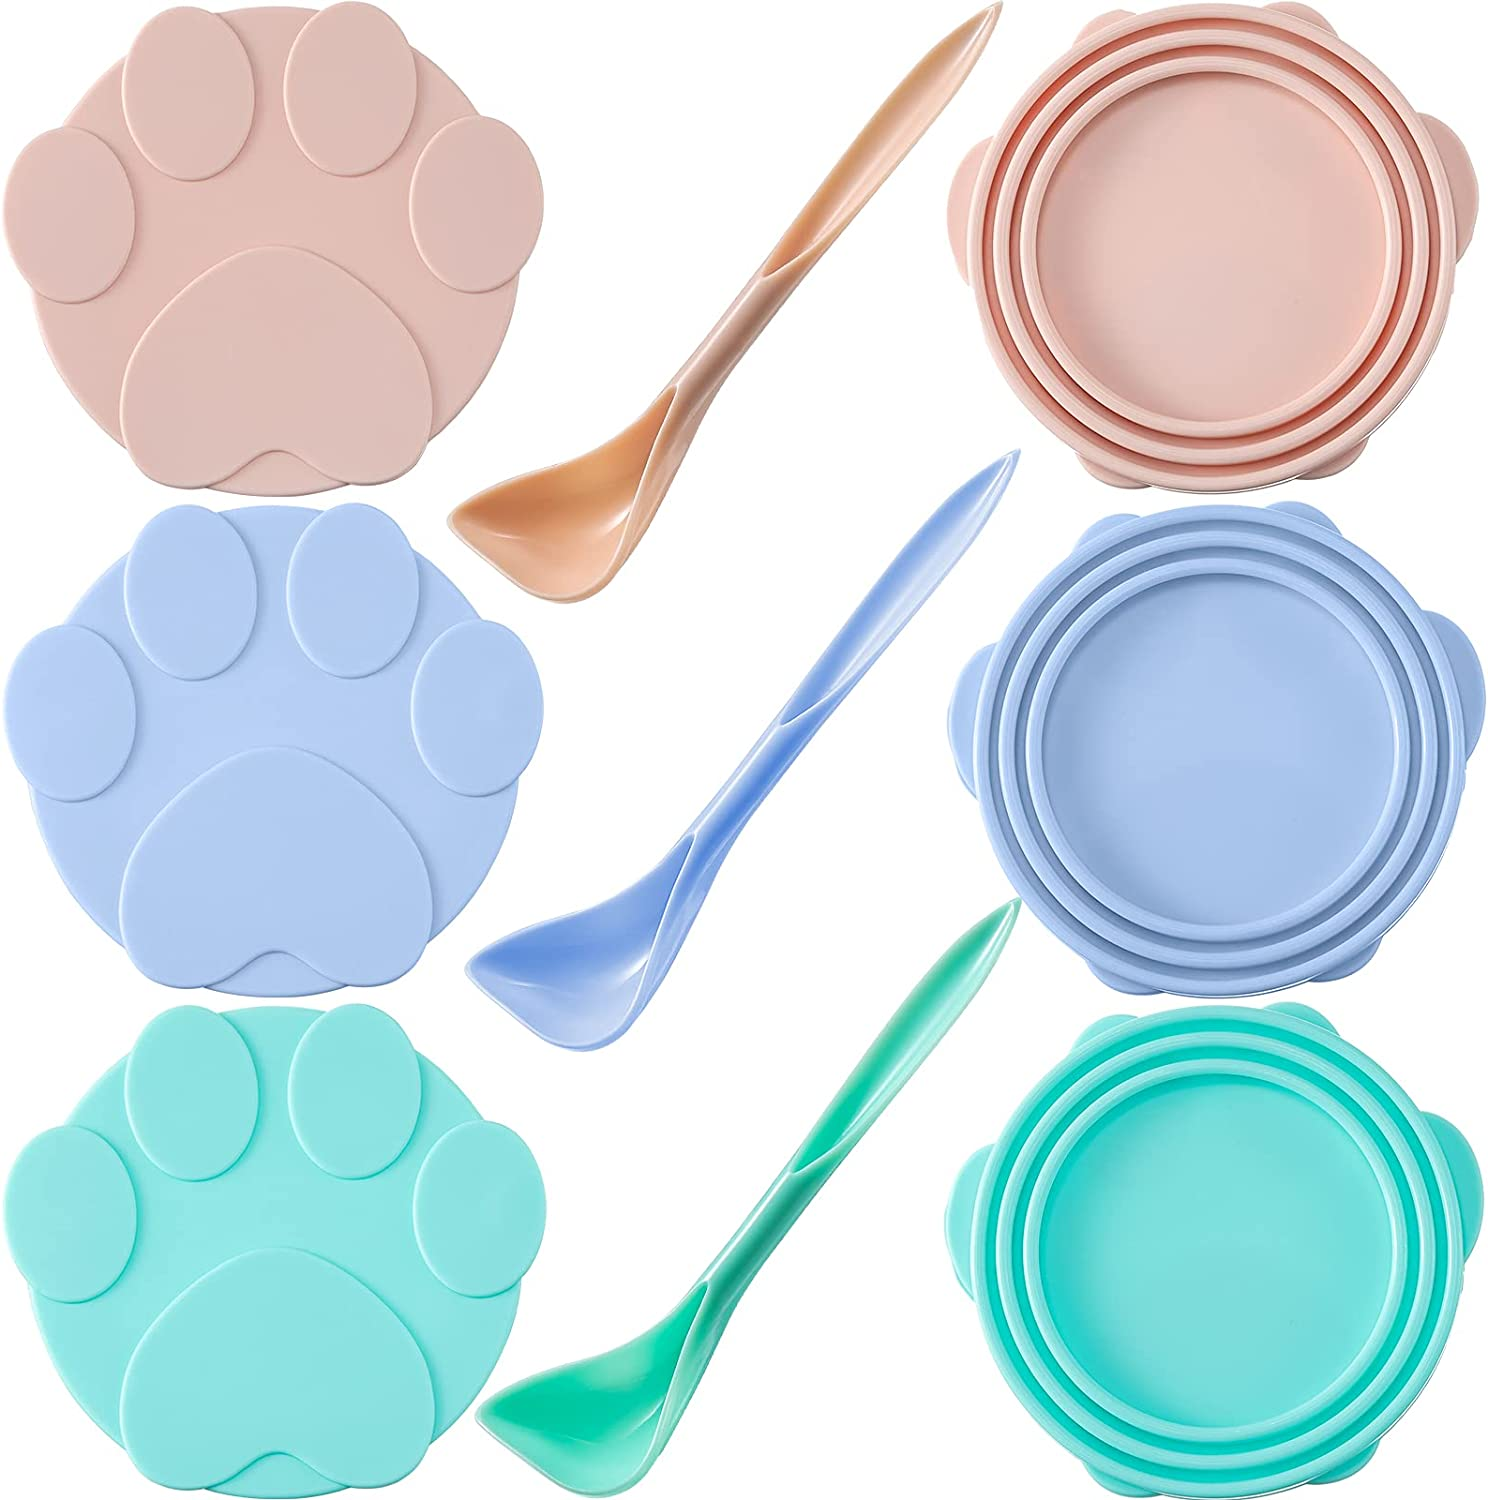 3 Pieces Cute Pet Food Can Lids with 3 Spoons, Silicone Can Lid Covers for Dog and Cat Food, Universal Silicone Cat Food Can Lids 1 Fit 3 Standard Size (Pink, Blue, Green)